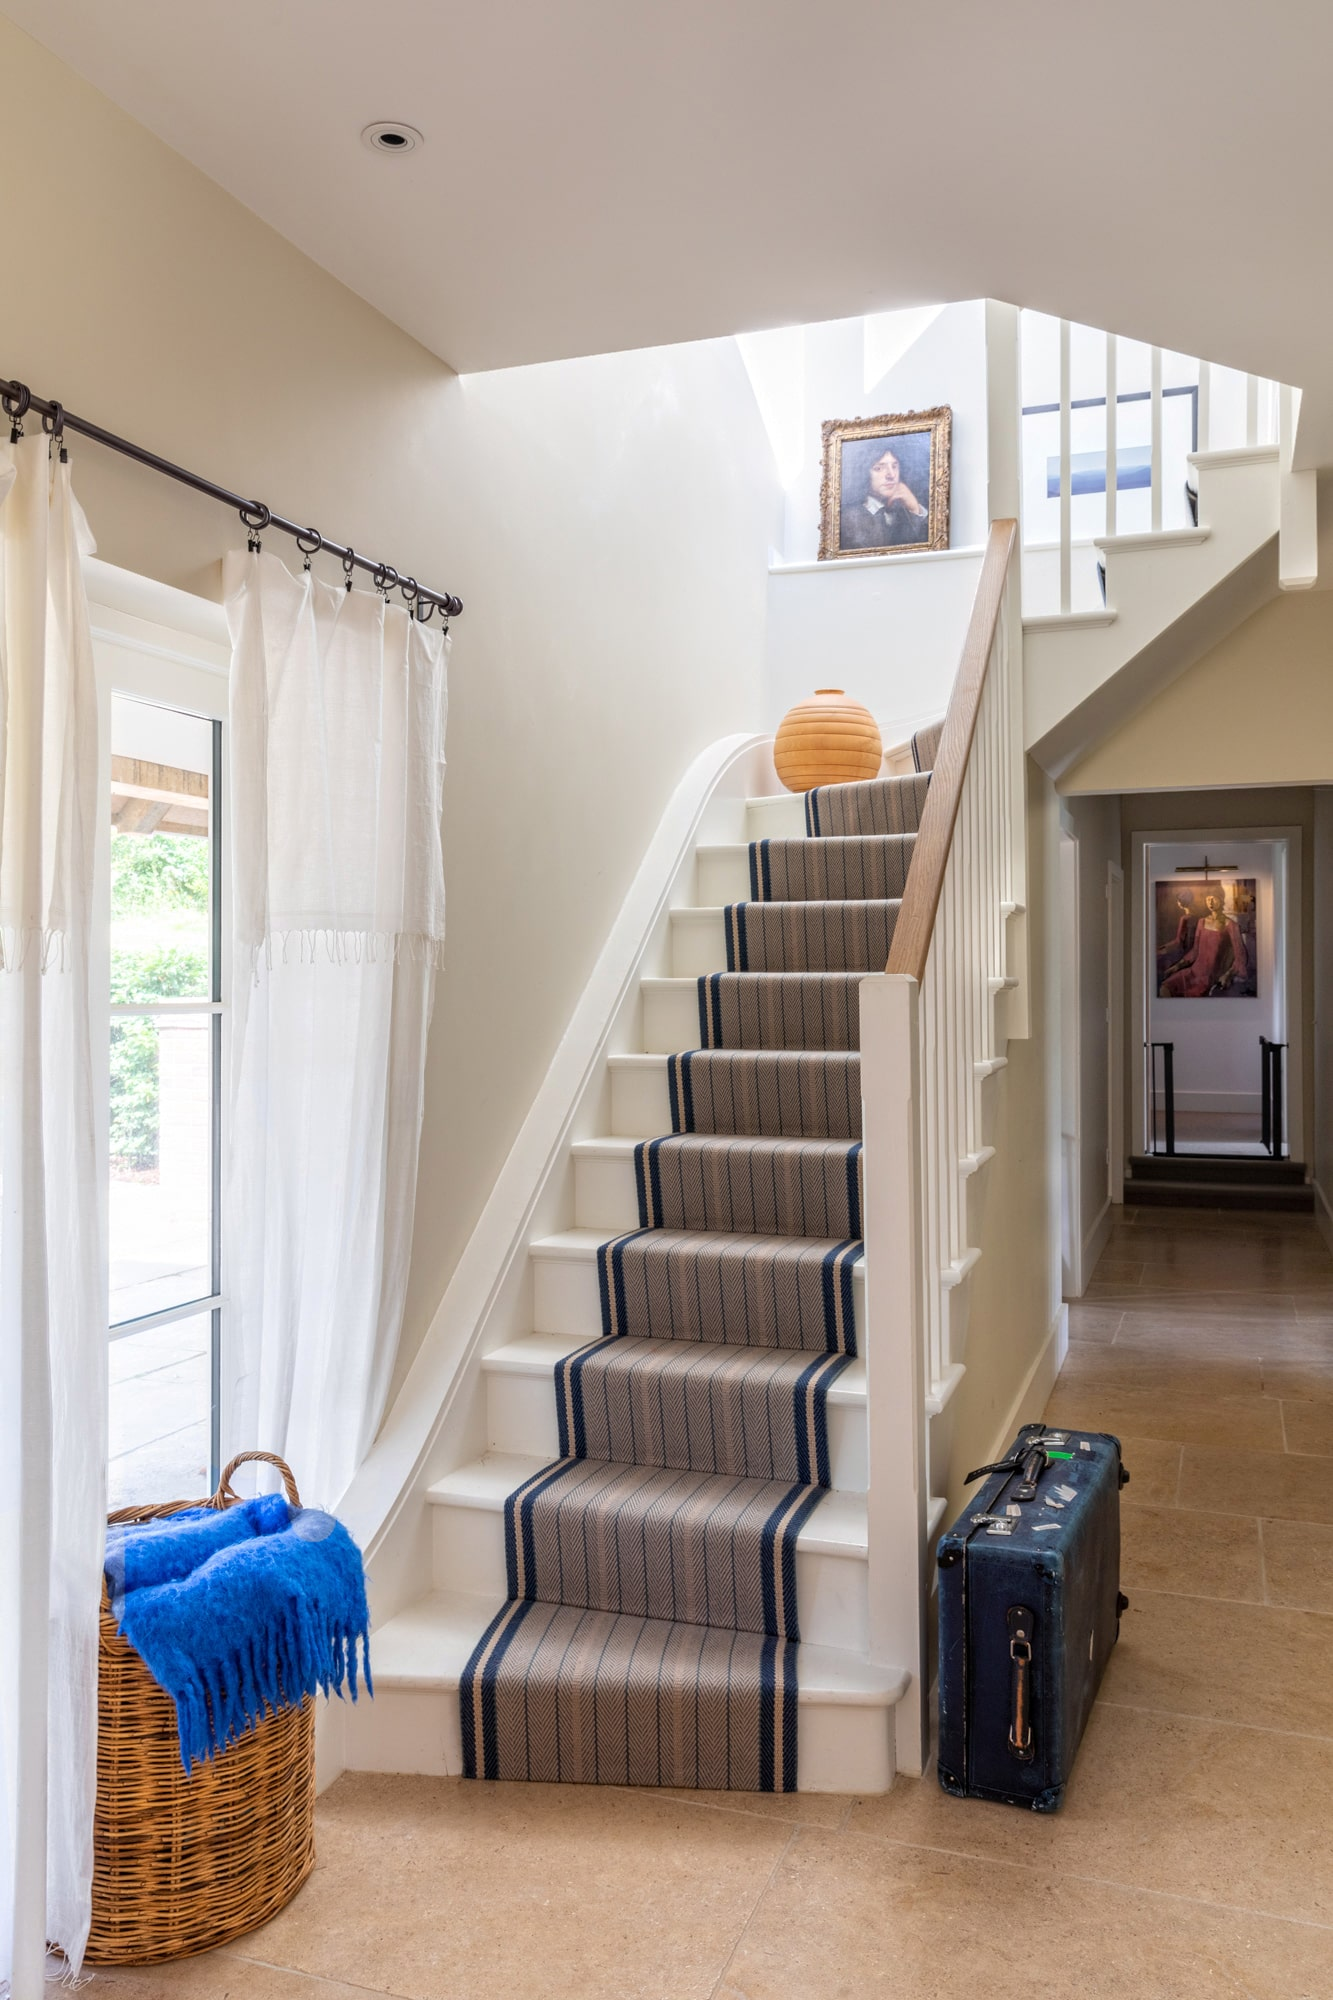 Interior design photography: a staircase in a country house